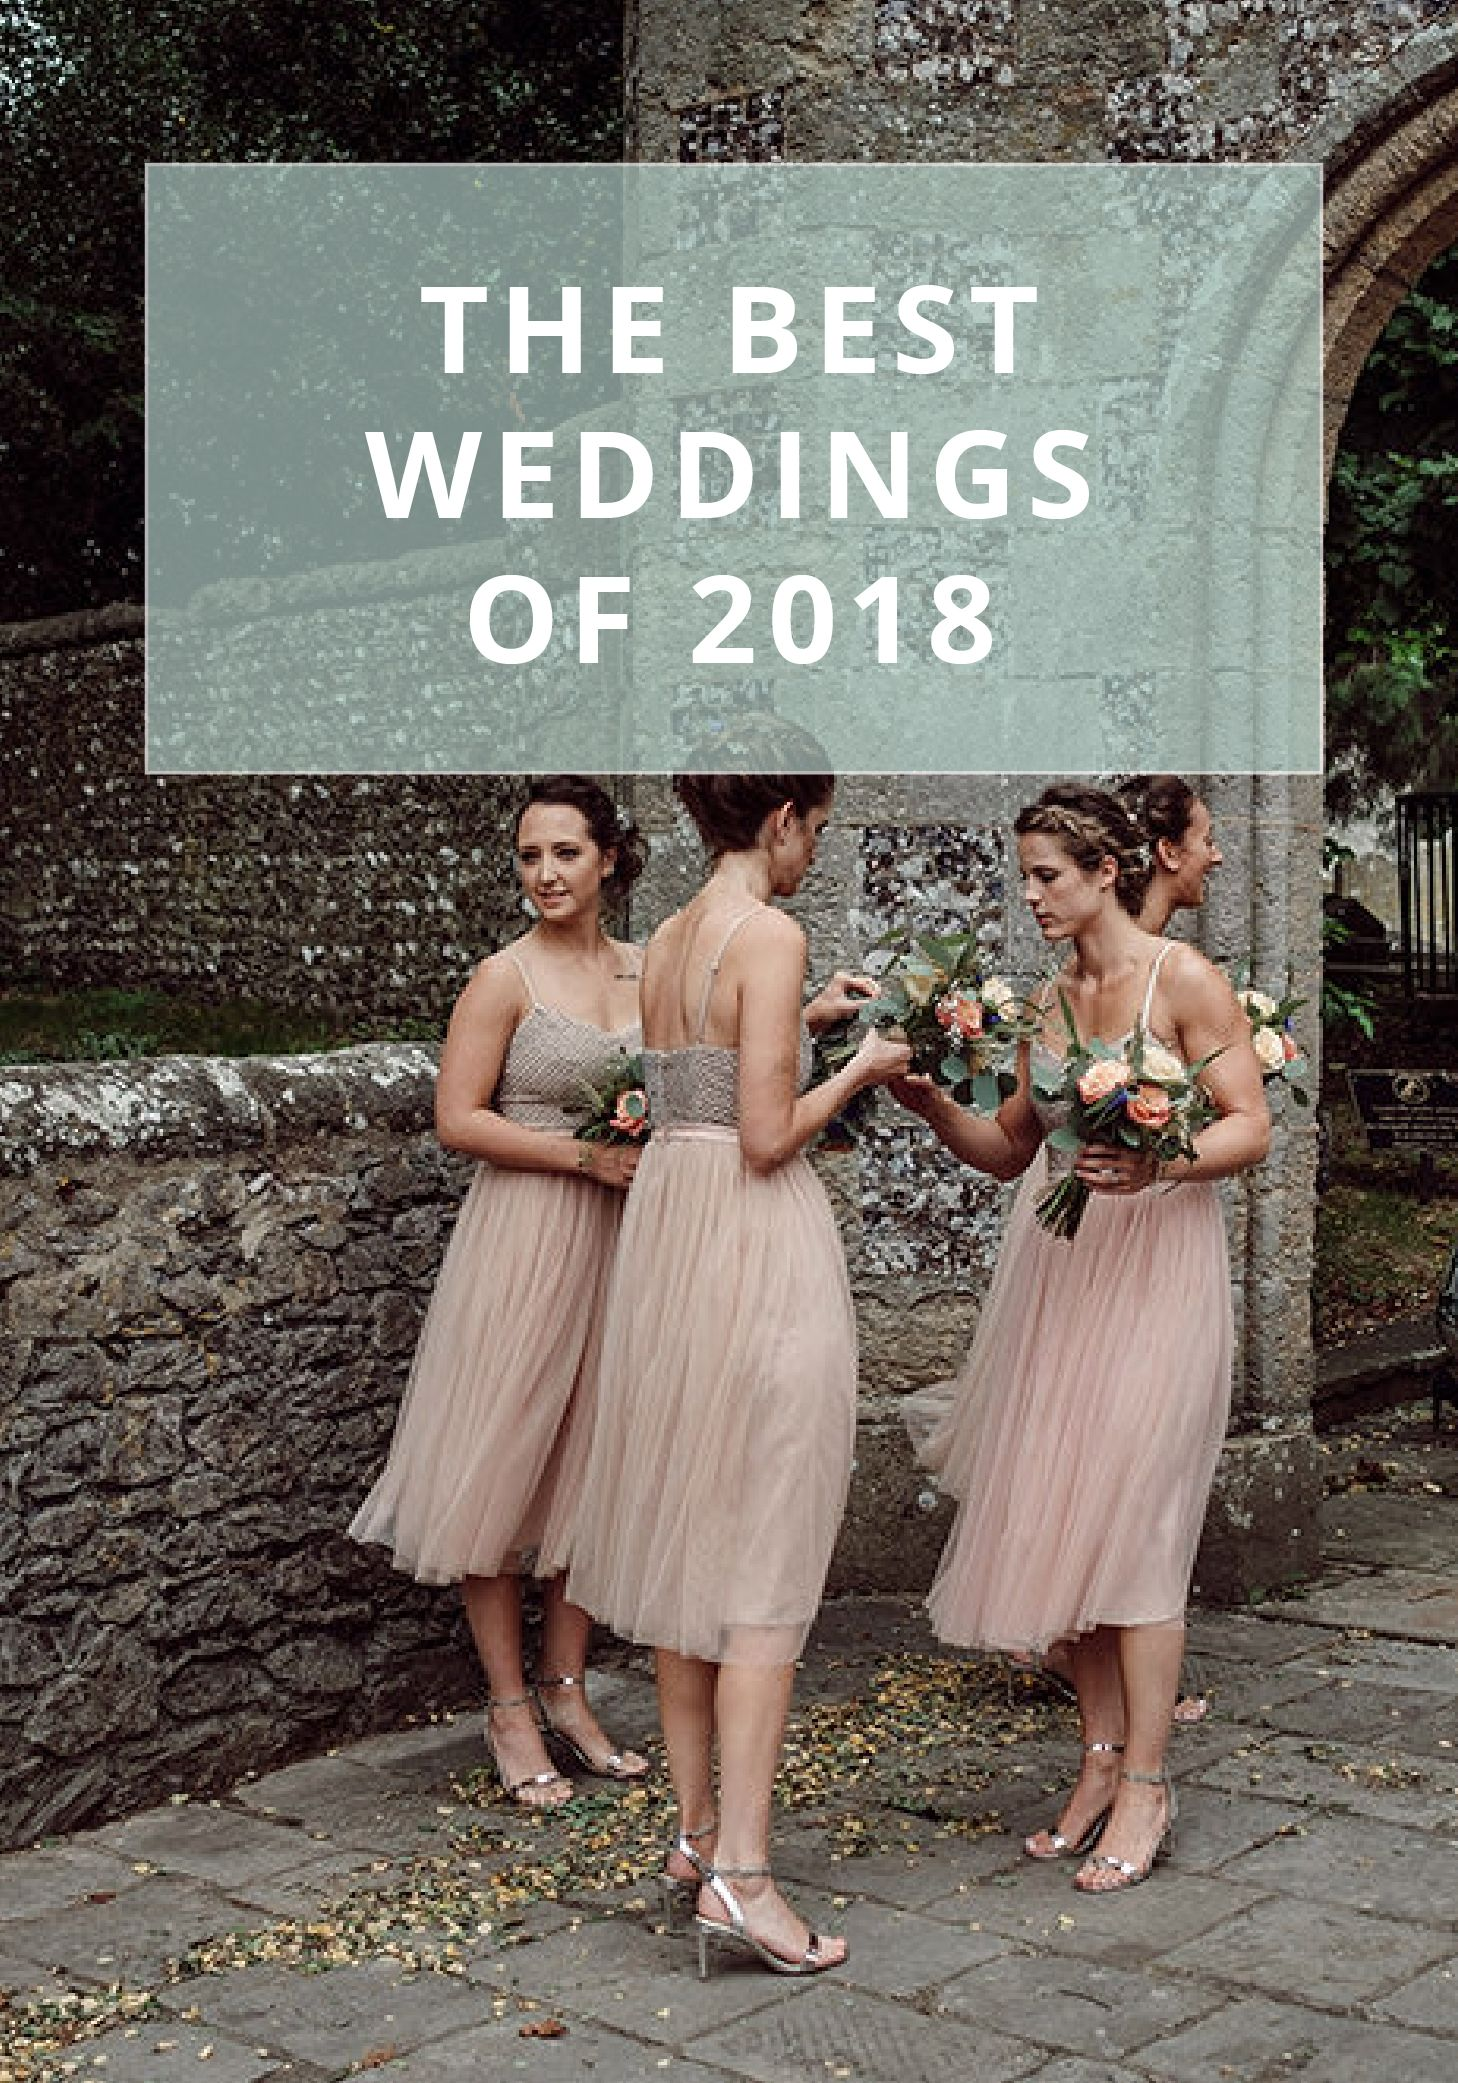 10 Most Popular Real Weddings From Top Uk Wedding Blog Rock My Wedding Wedding Bridesmaids Top Wedding Dresses Popular Wedding